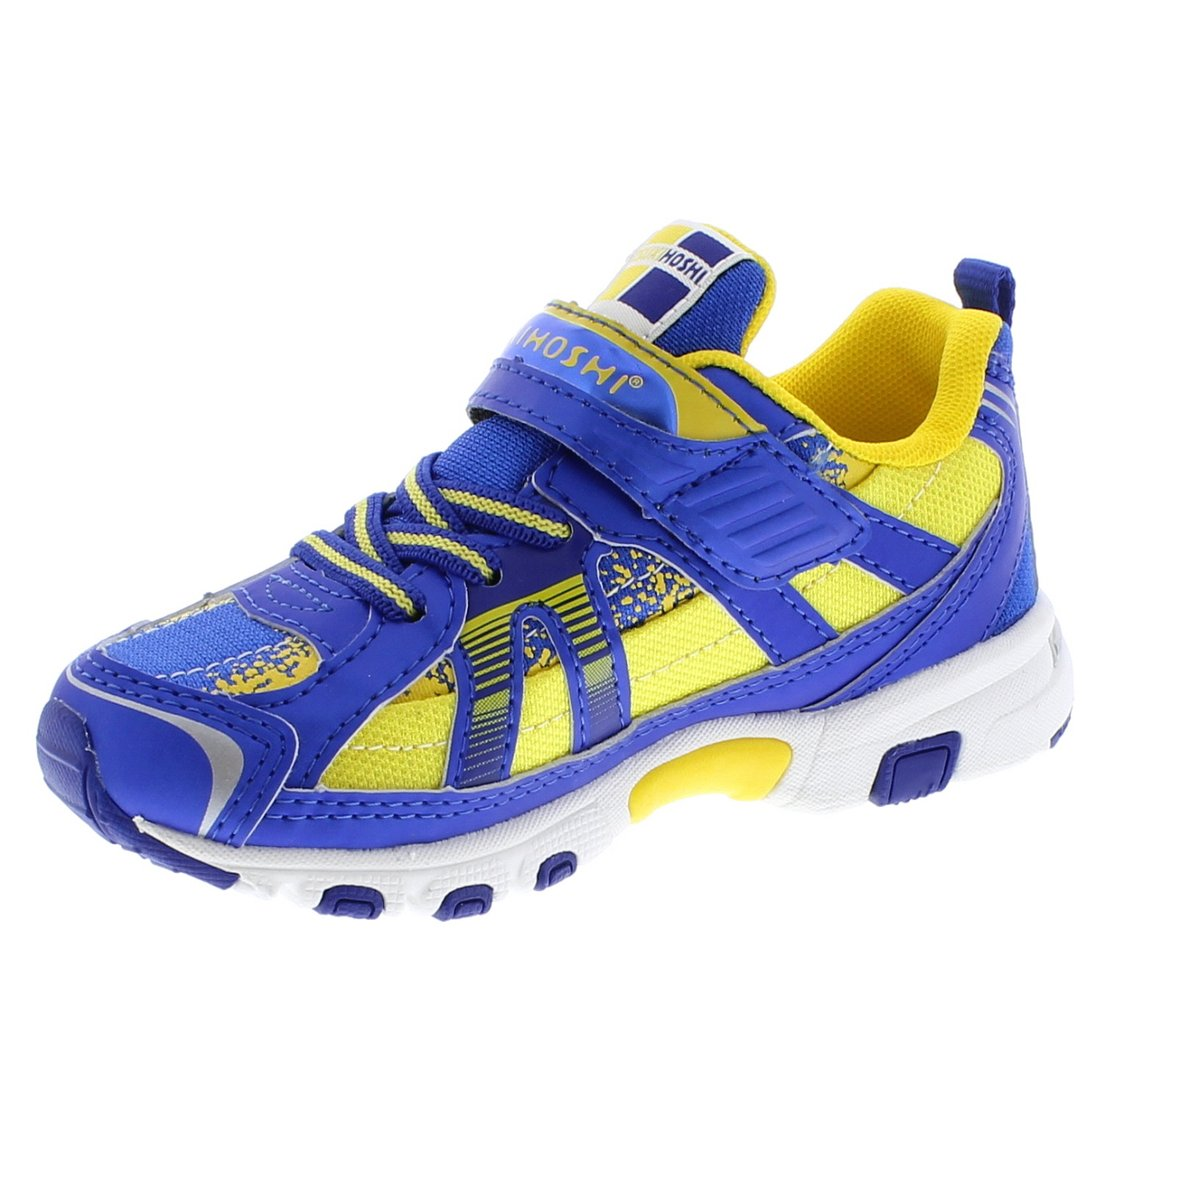 Child Tsukihoshi Storm Sneaker in Royal/Gold from the front view